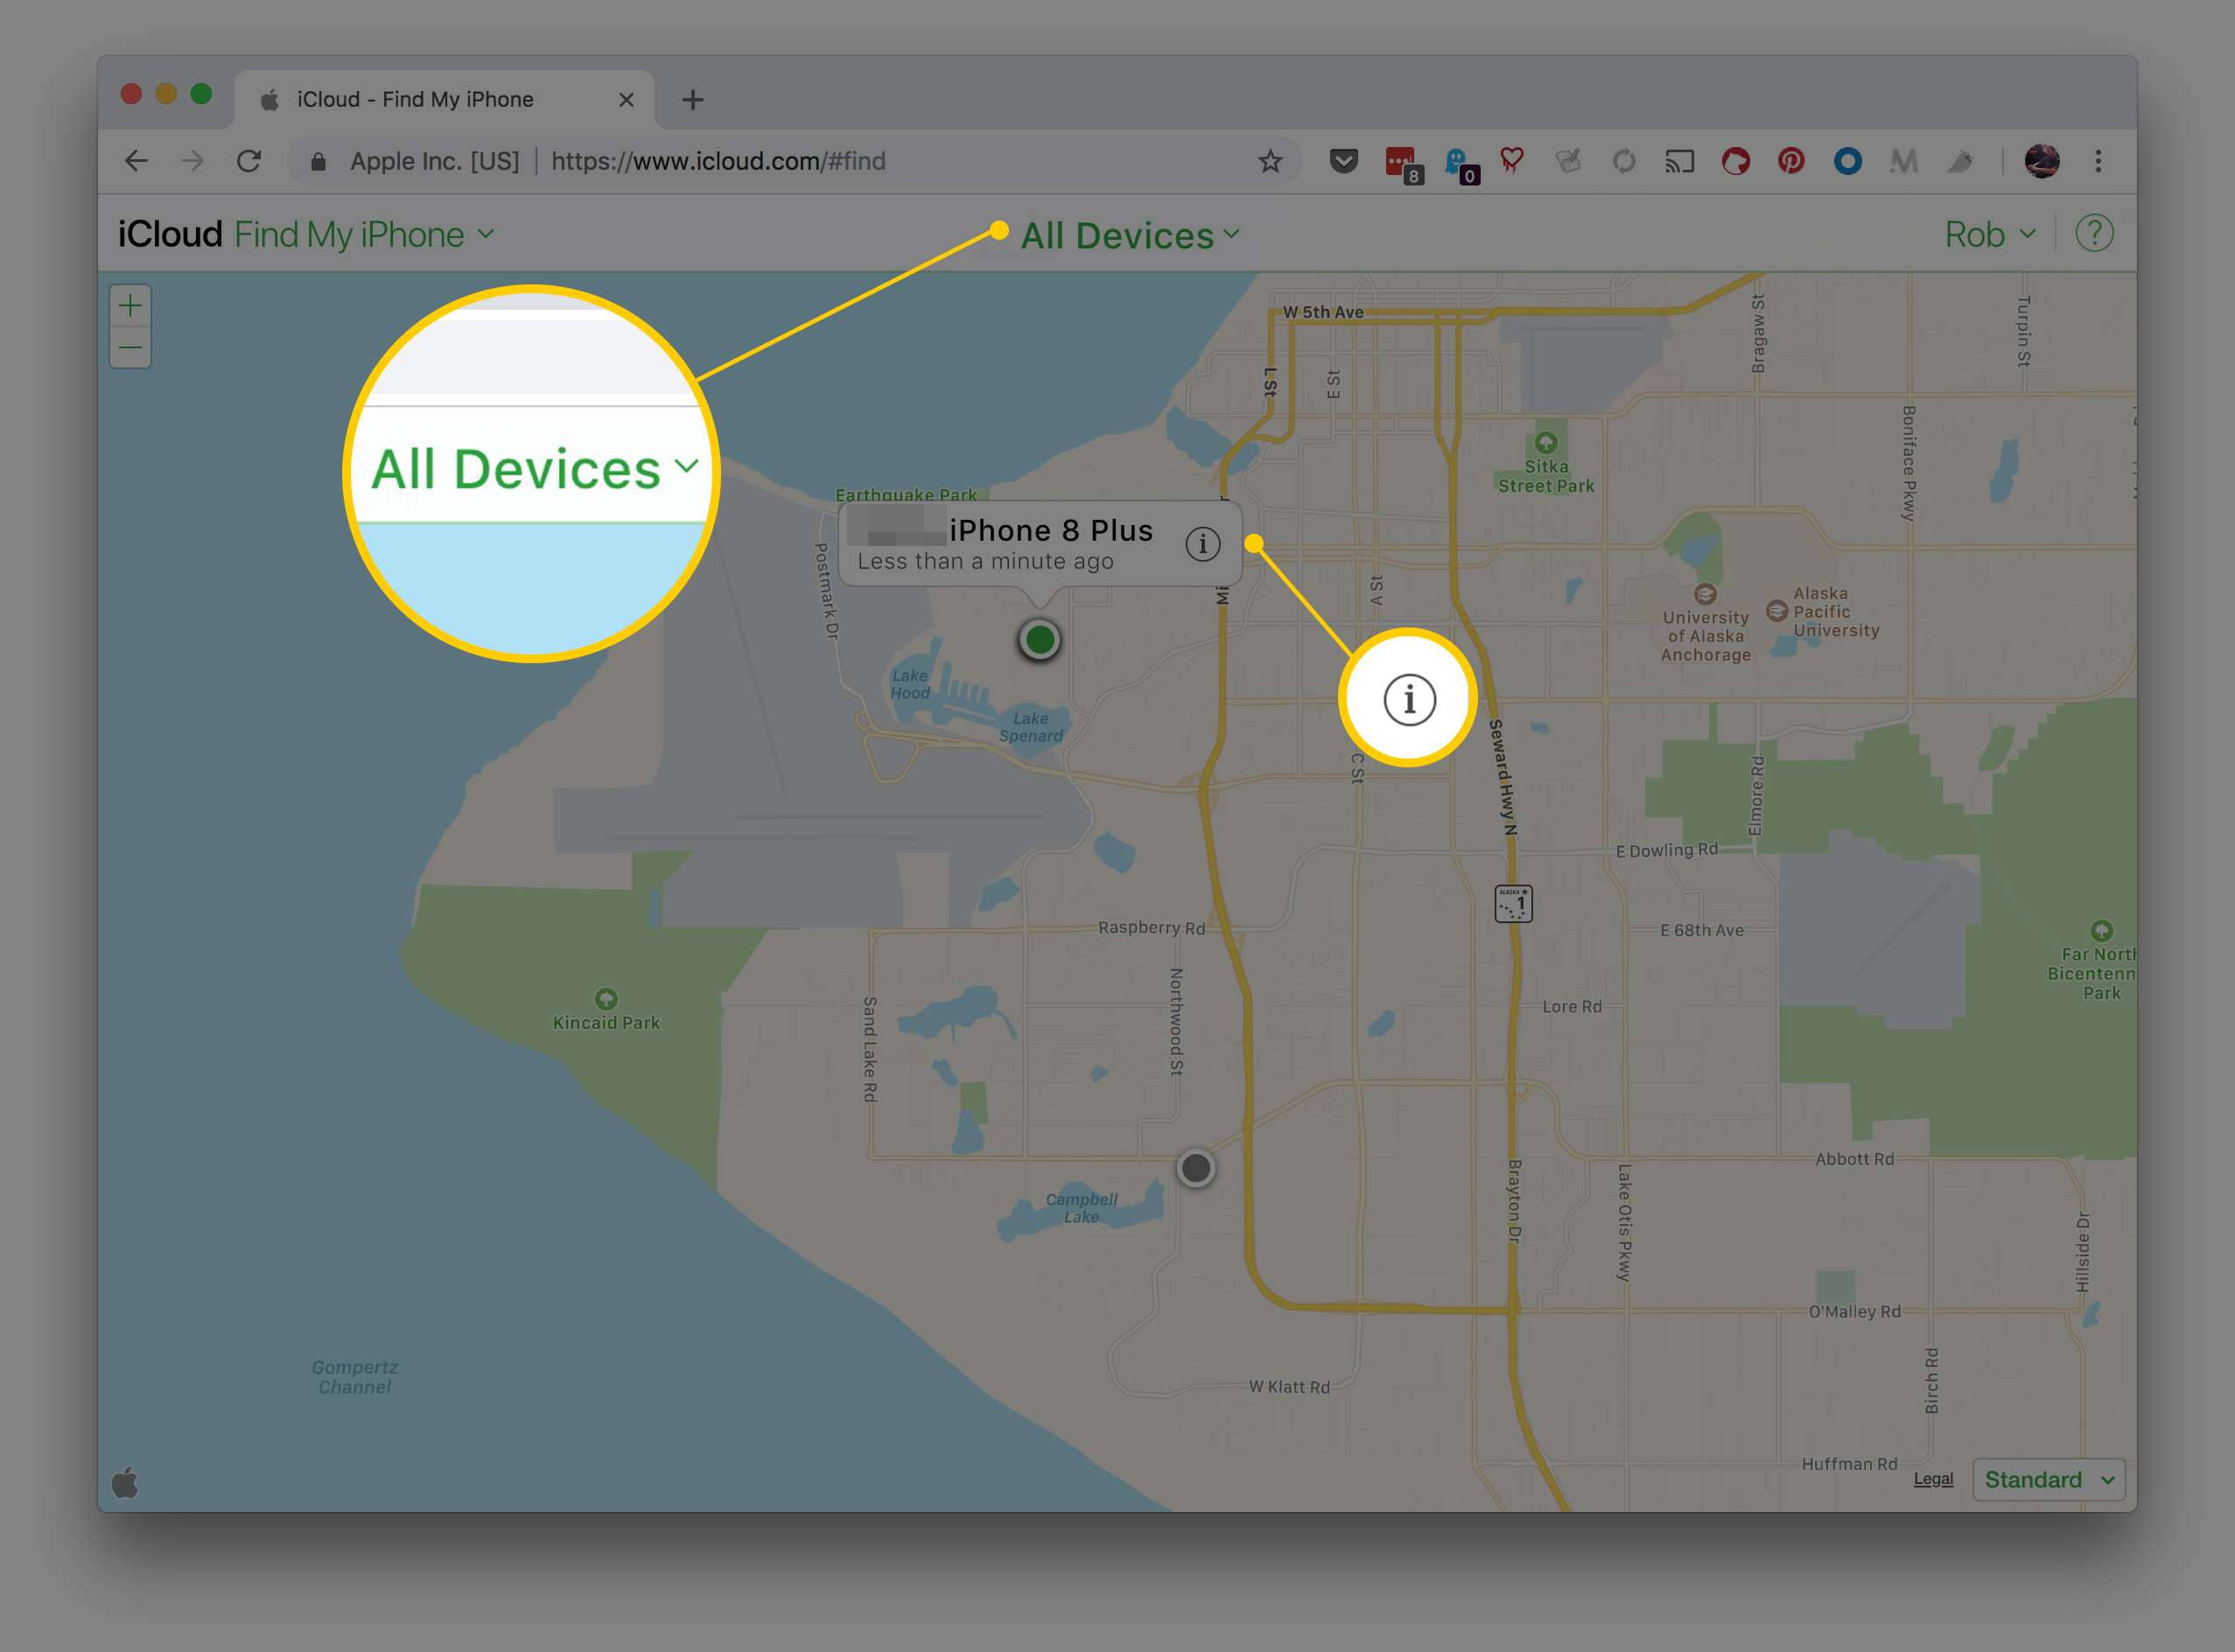 Find My iPhone page in Chrome highlighting All Devices and Information buttons